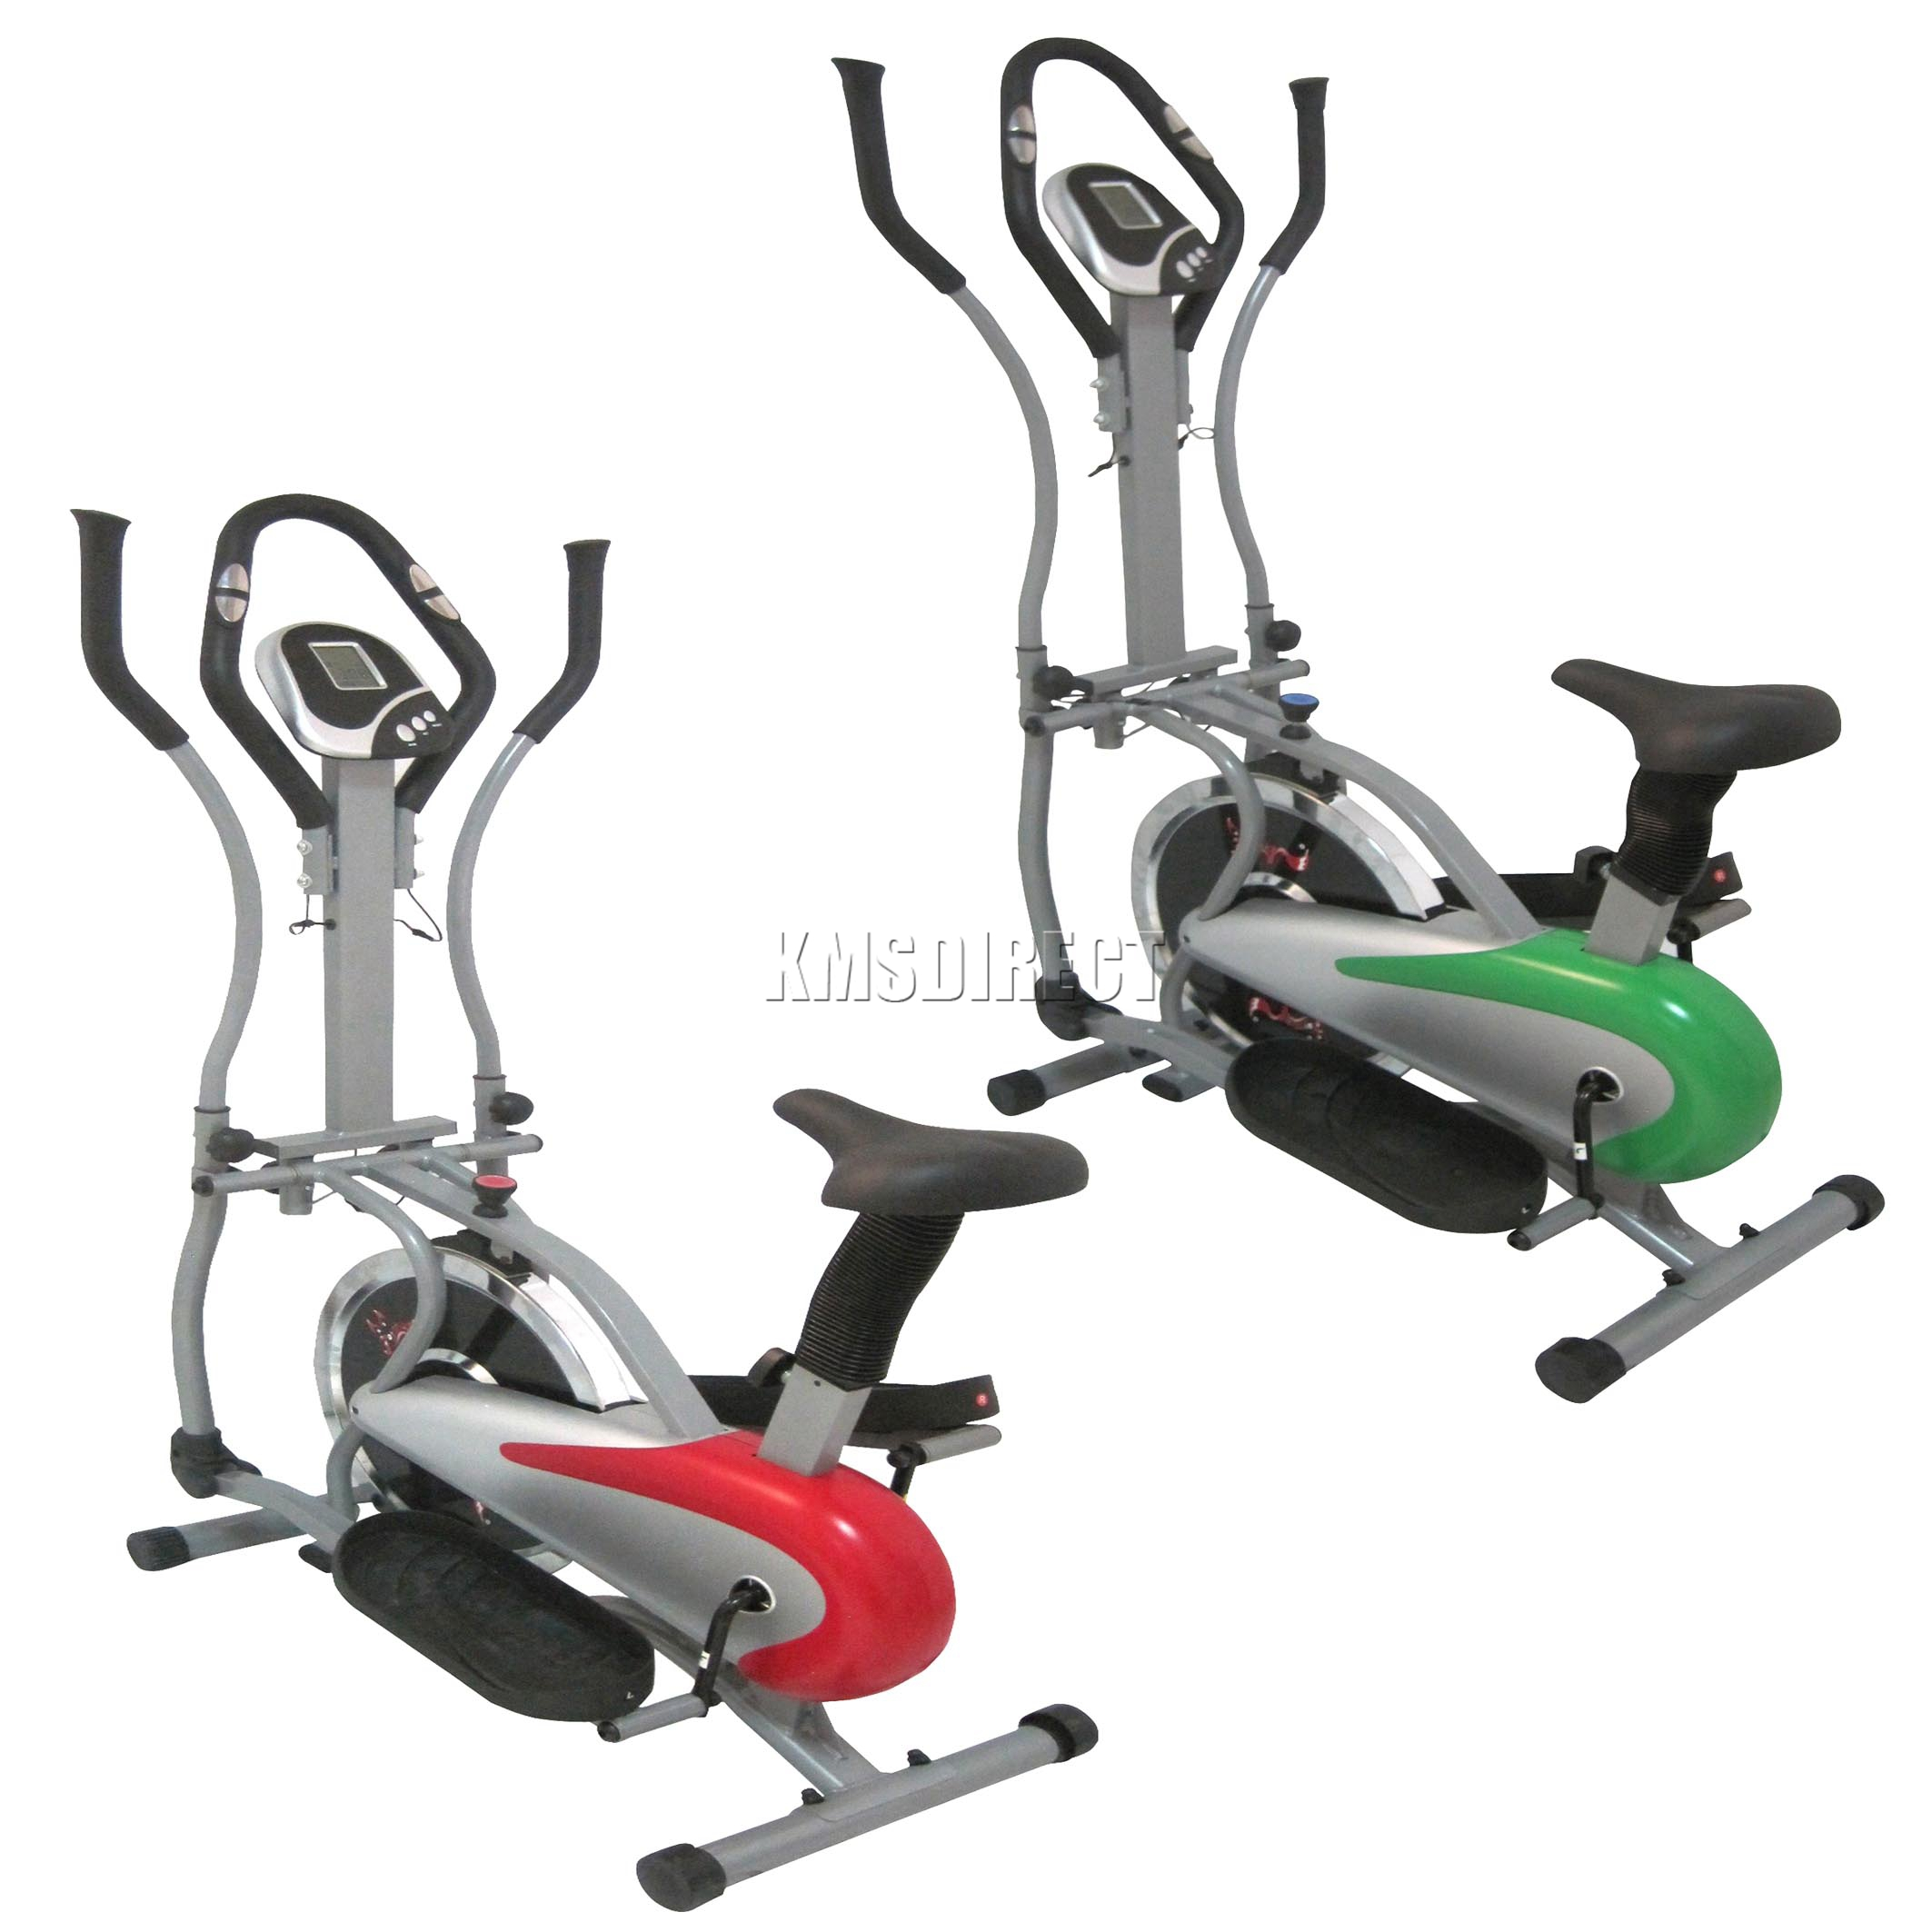 FoxHunter Exercise Bike Elliptical Cross Trainer Fitness Cardio Body Workout Gym